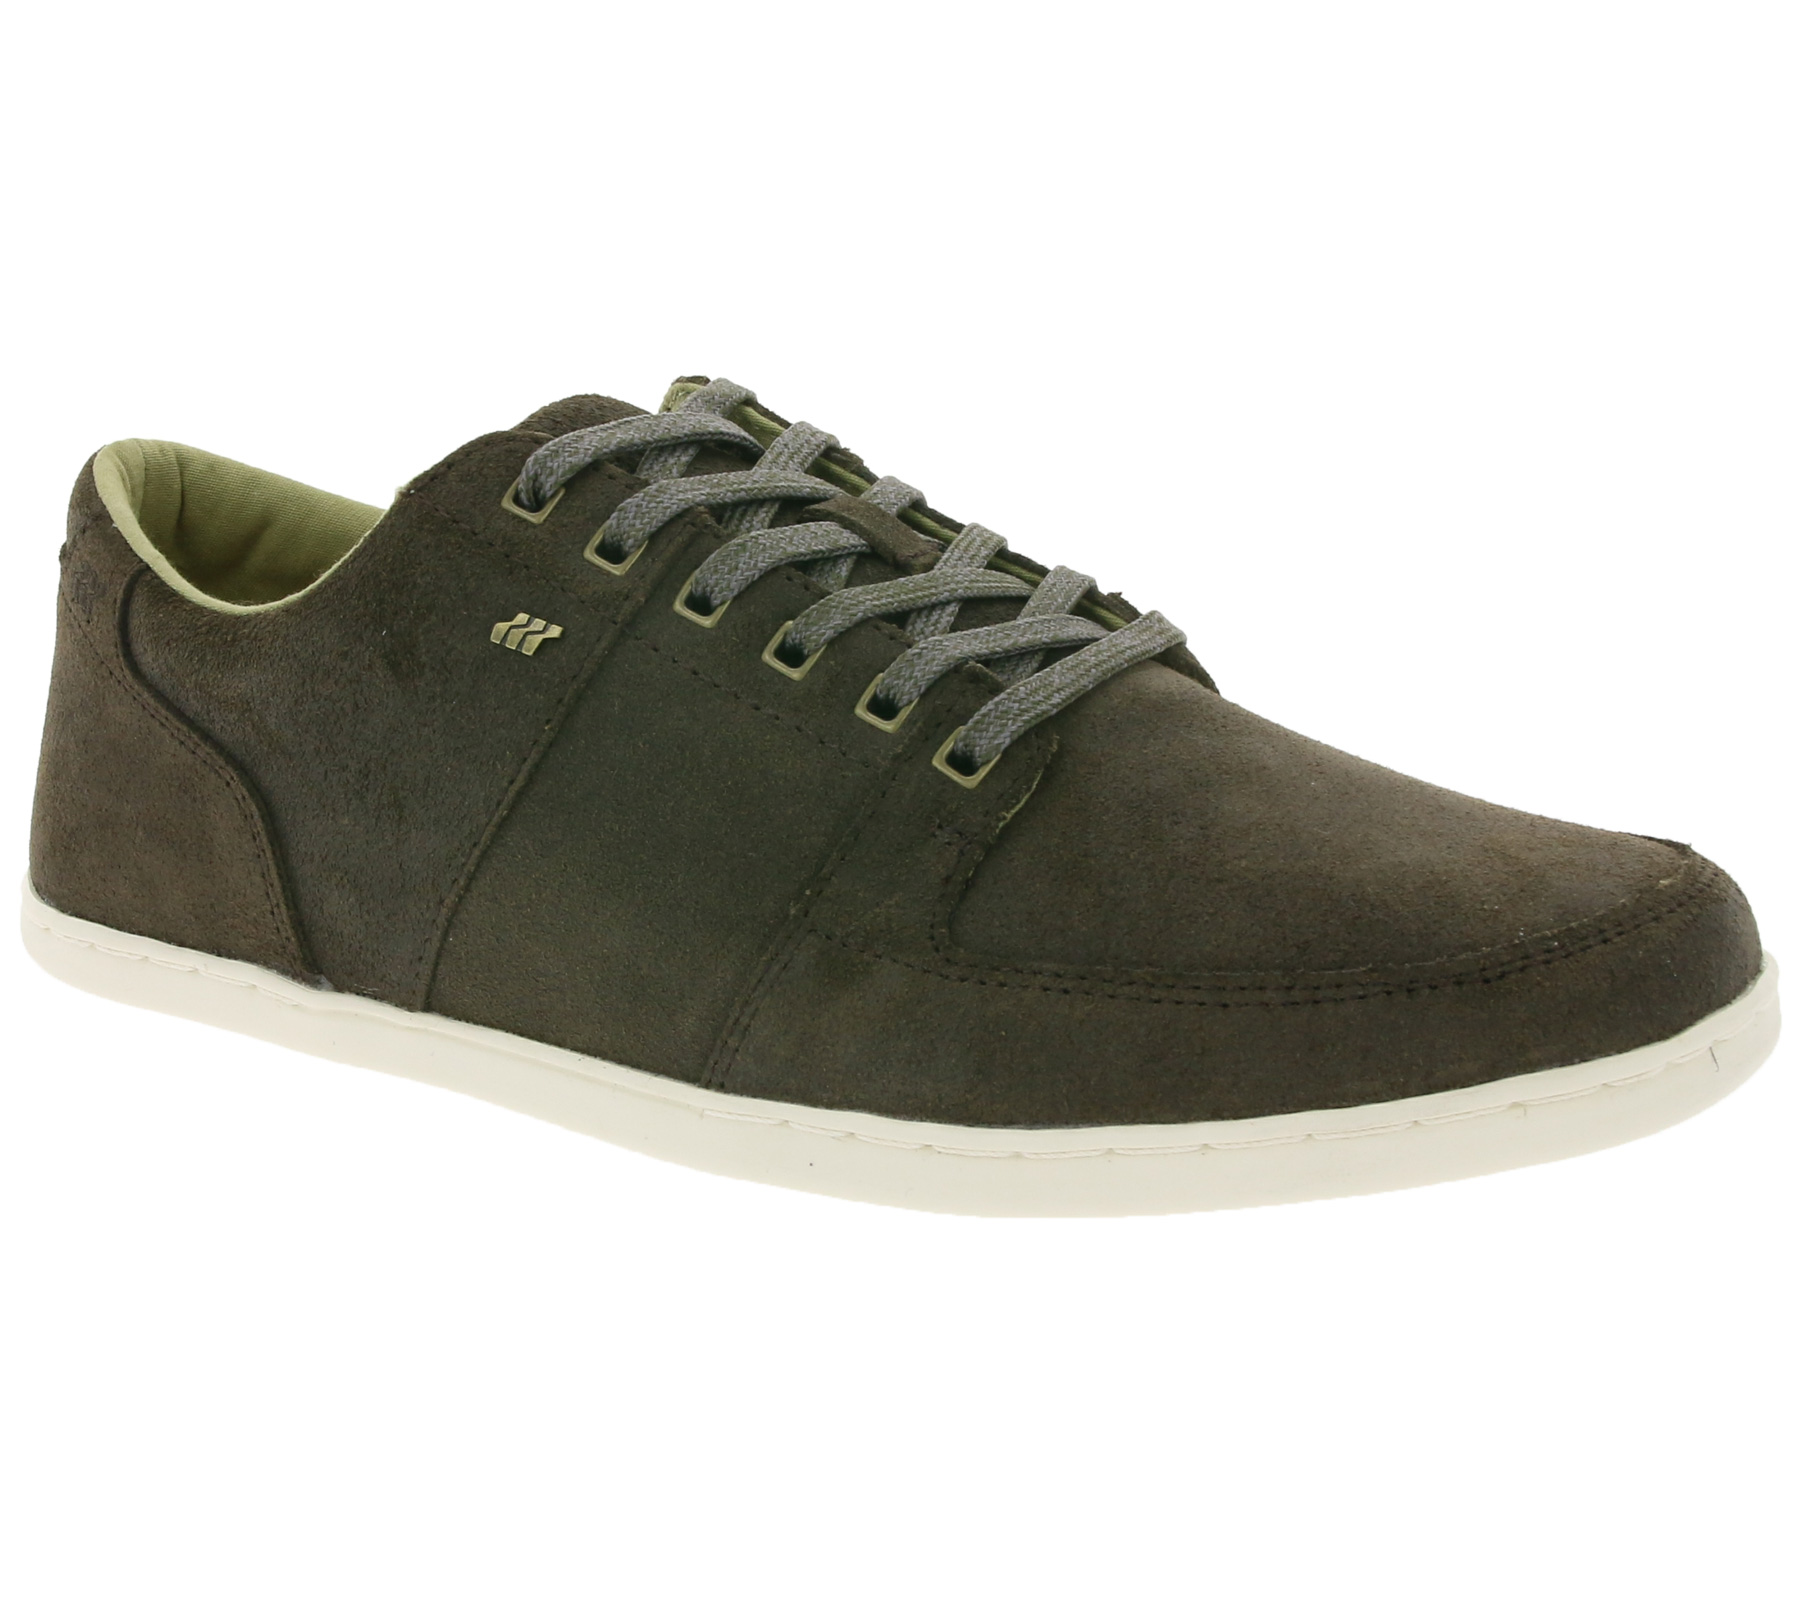 boxfresh cladd grey white mens leather trainers shoes men's